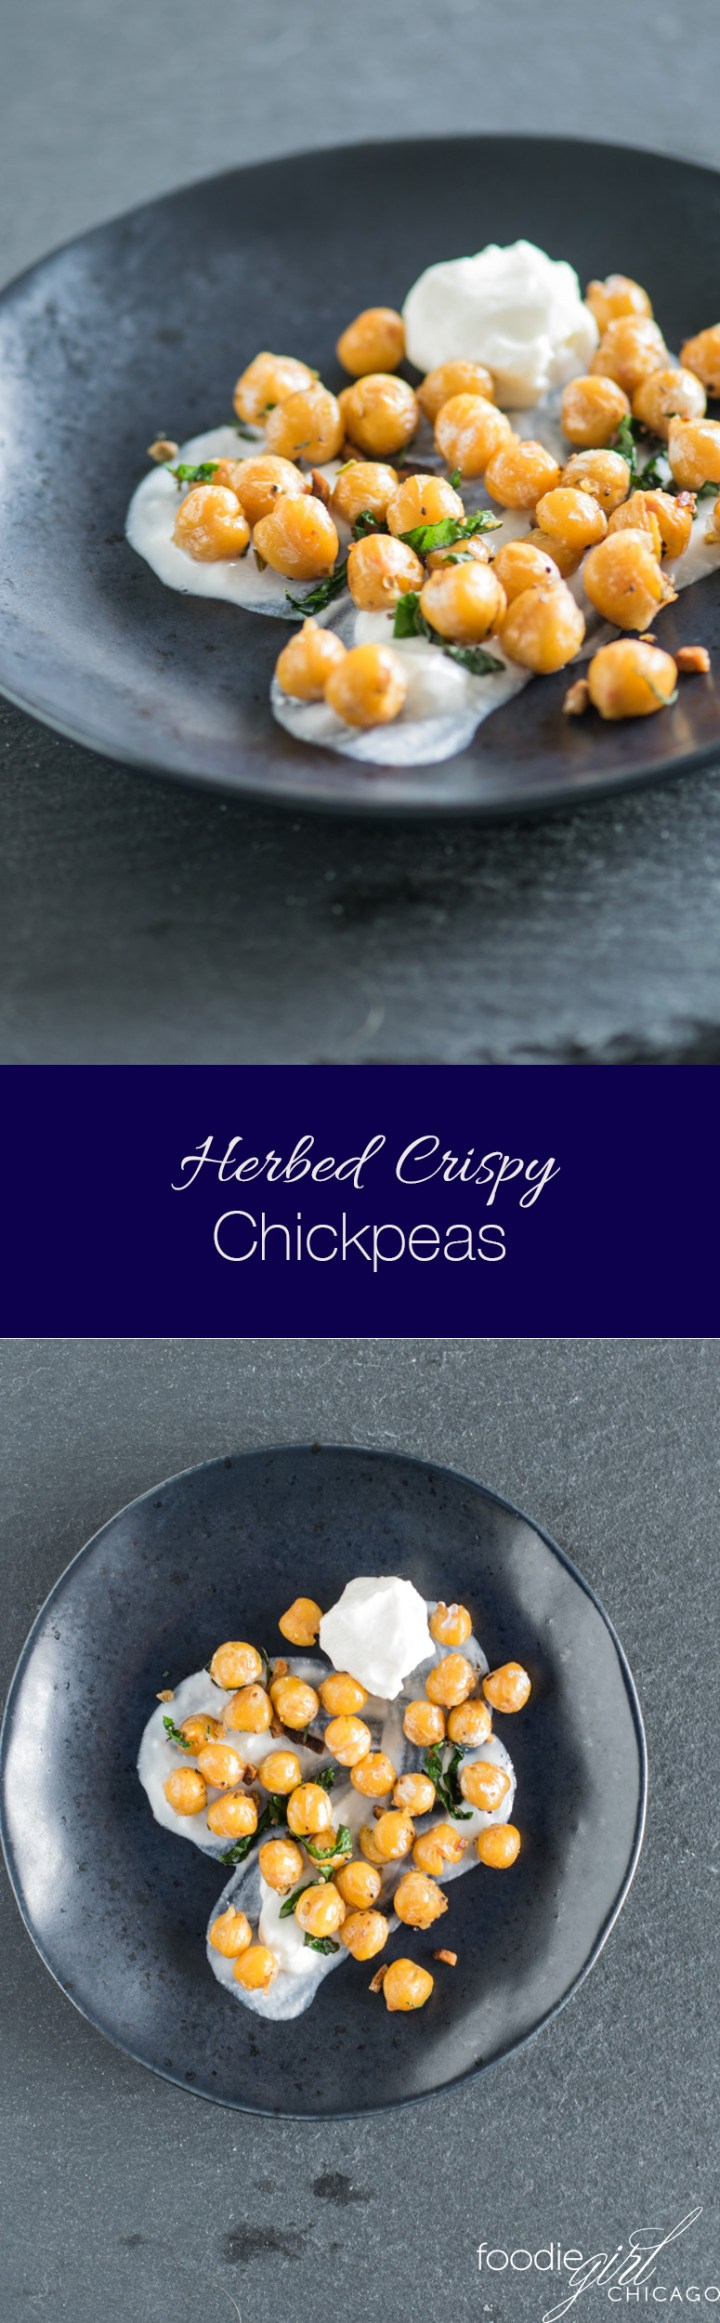 These herbed crispy chickpeas are the perfect addition to salad and sandwiches and make a great snack too!